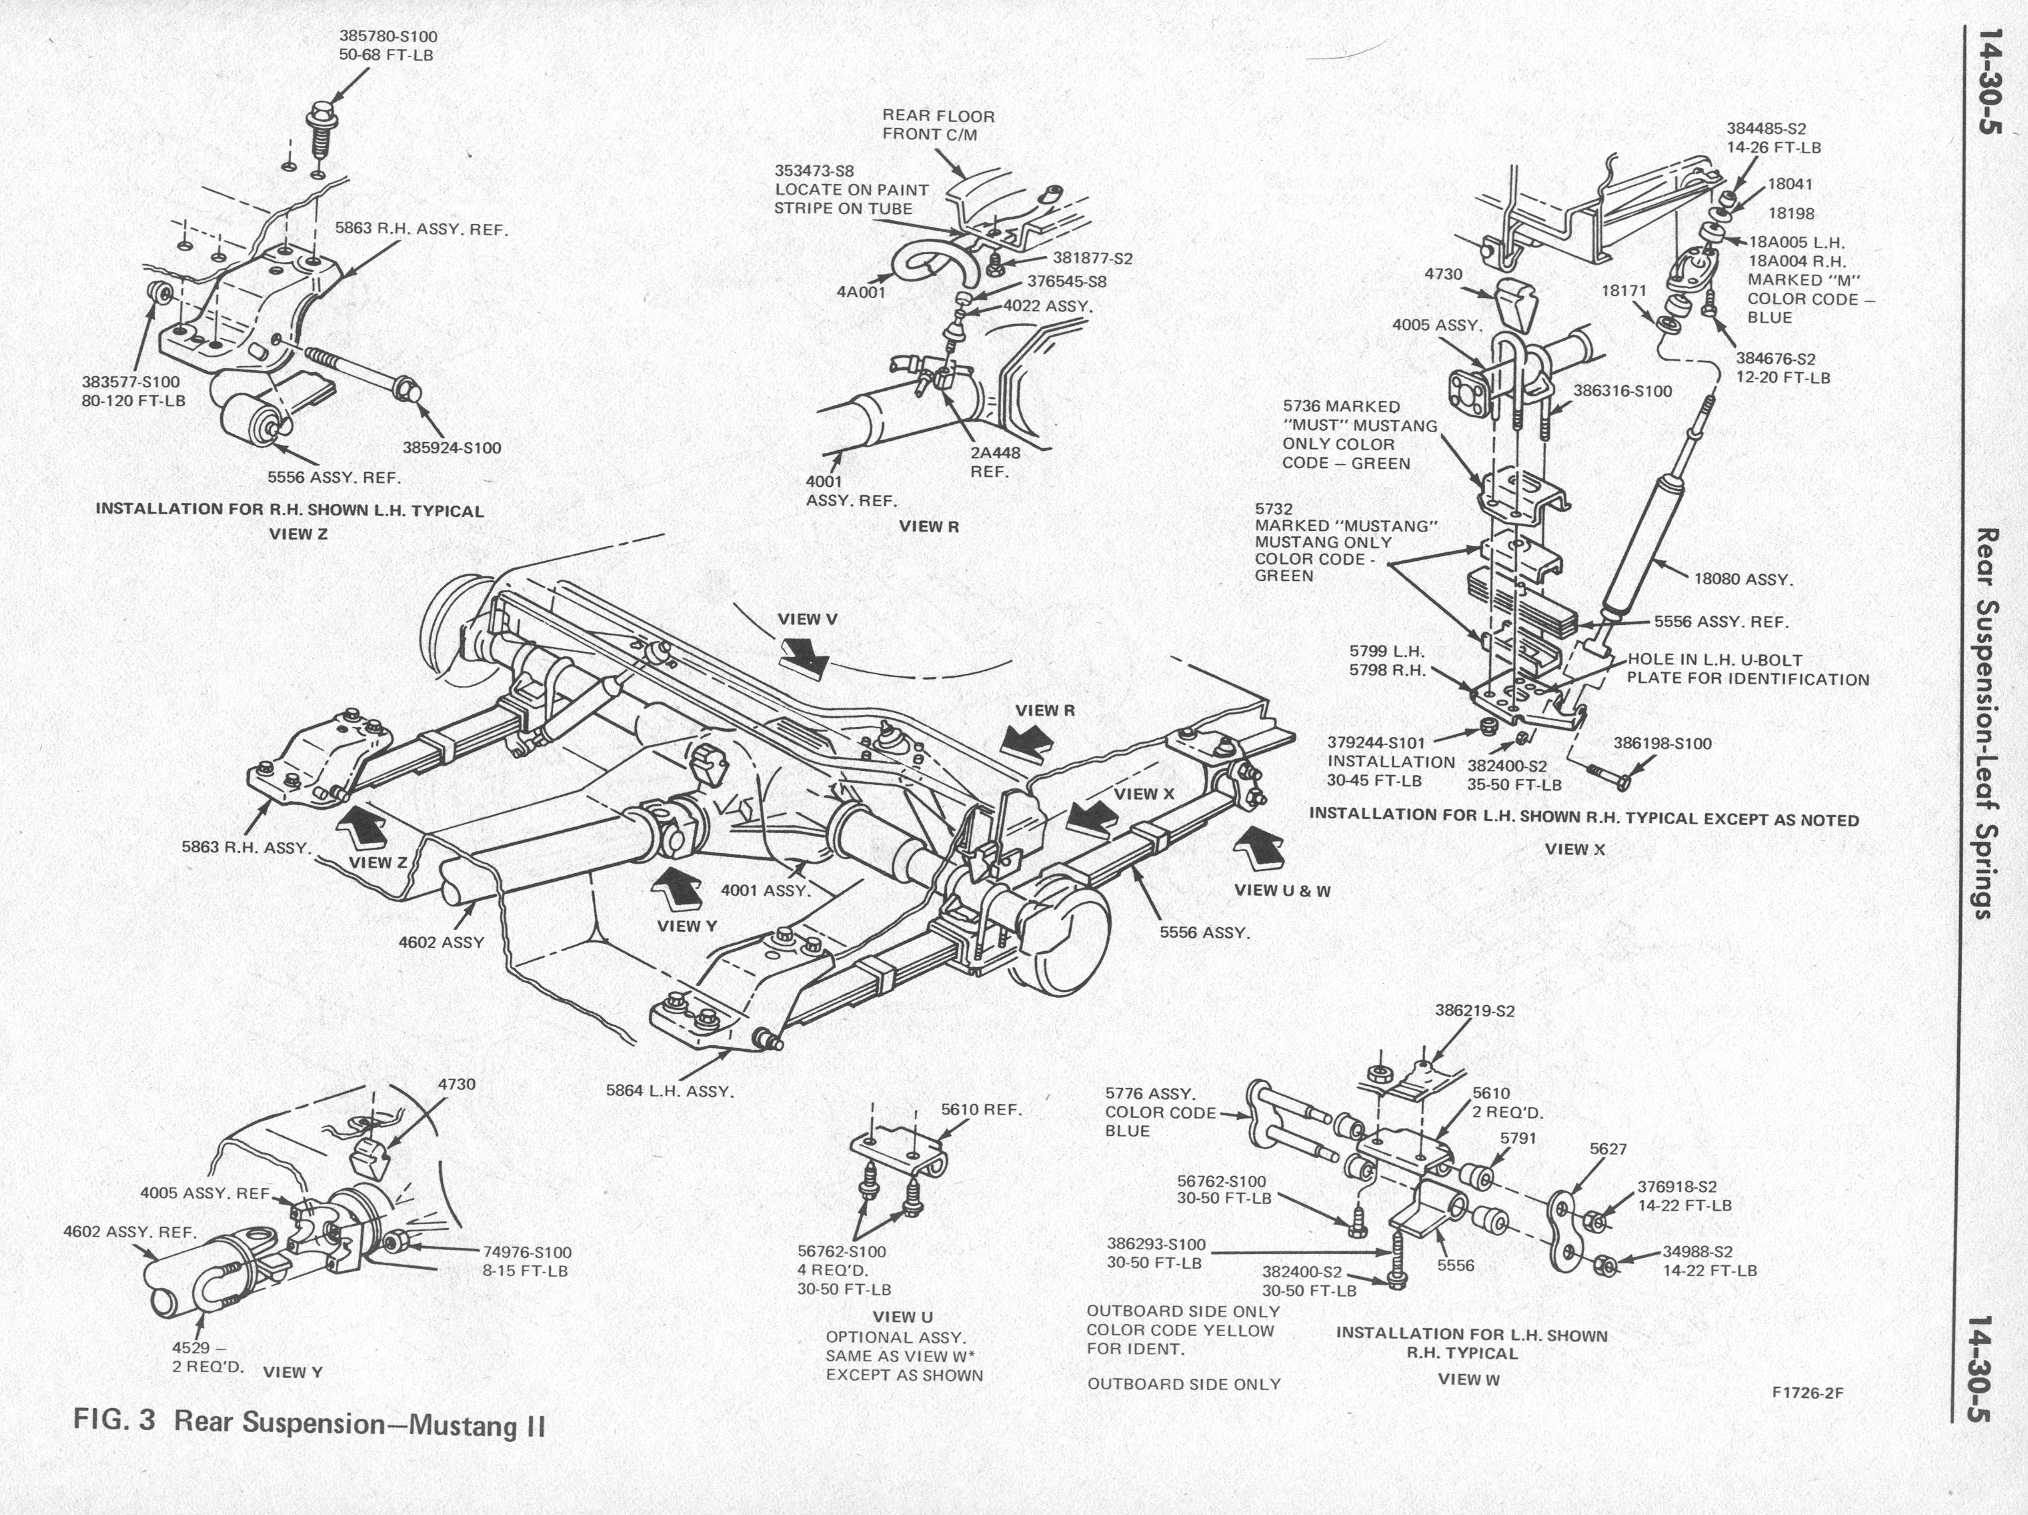 1973 Ford Mustang Alternator Wiring Diagram